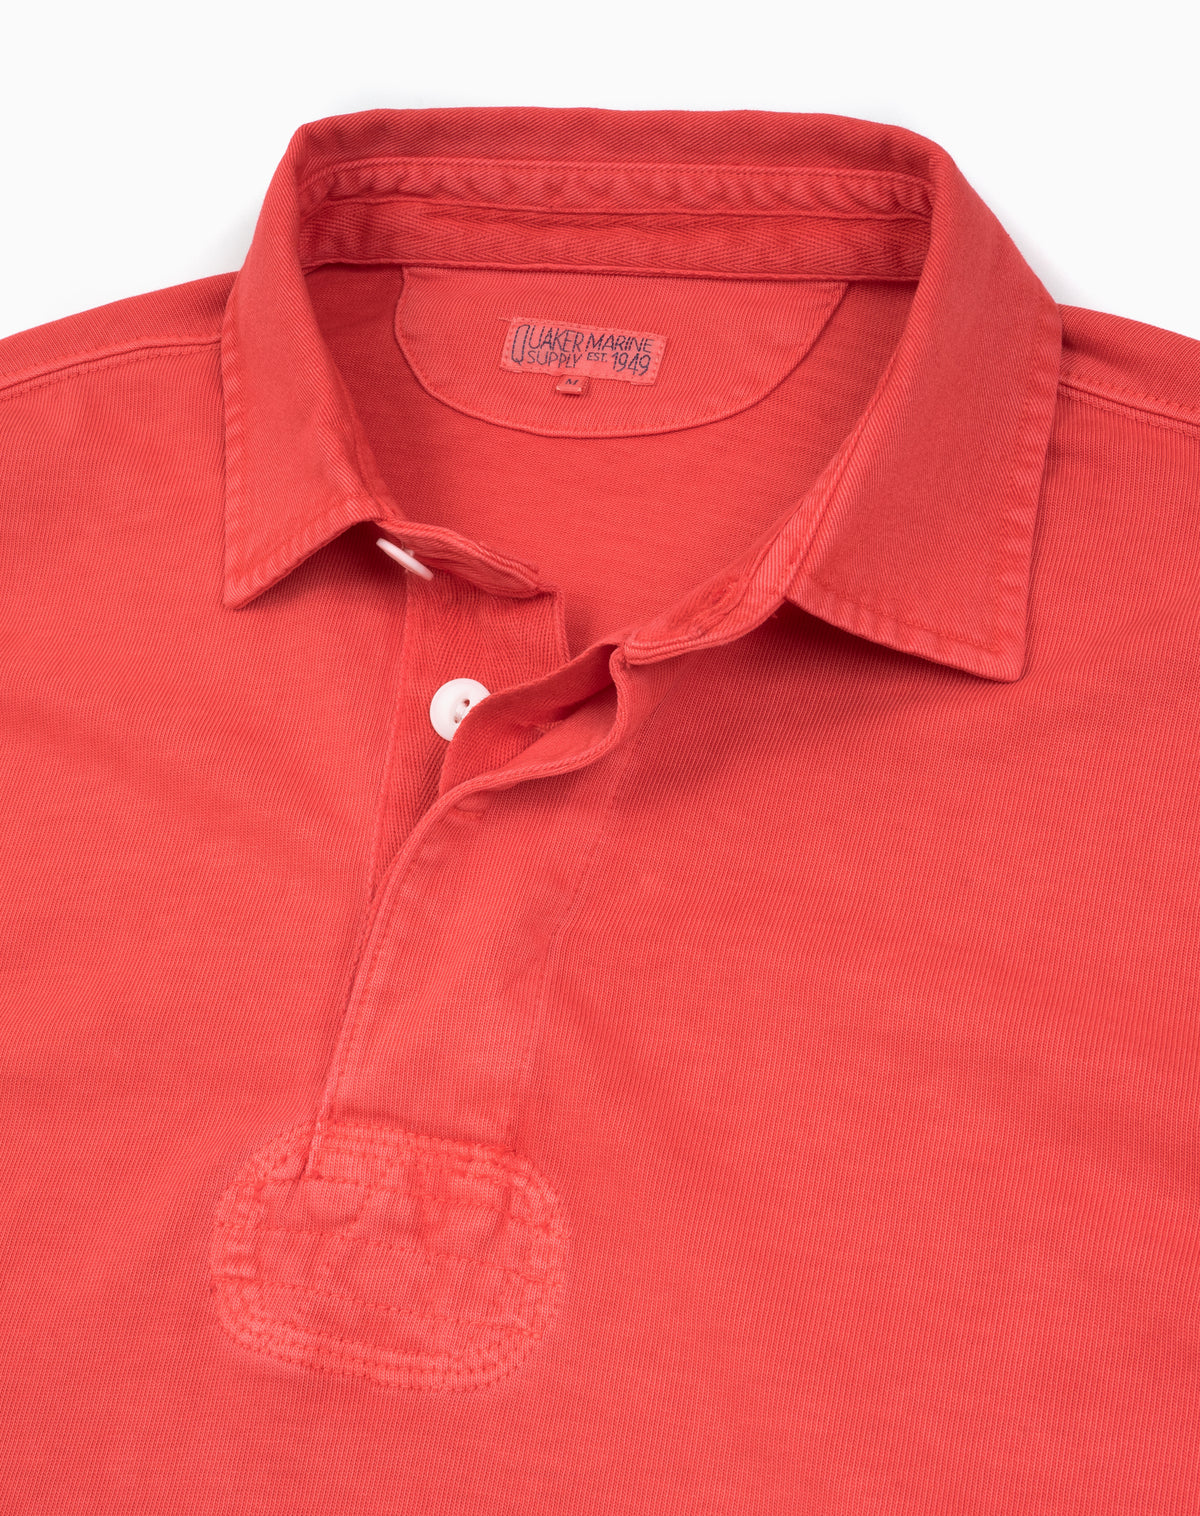 Rockland Rugby in Nautical Red